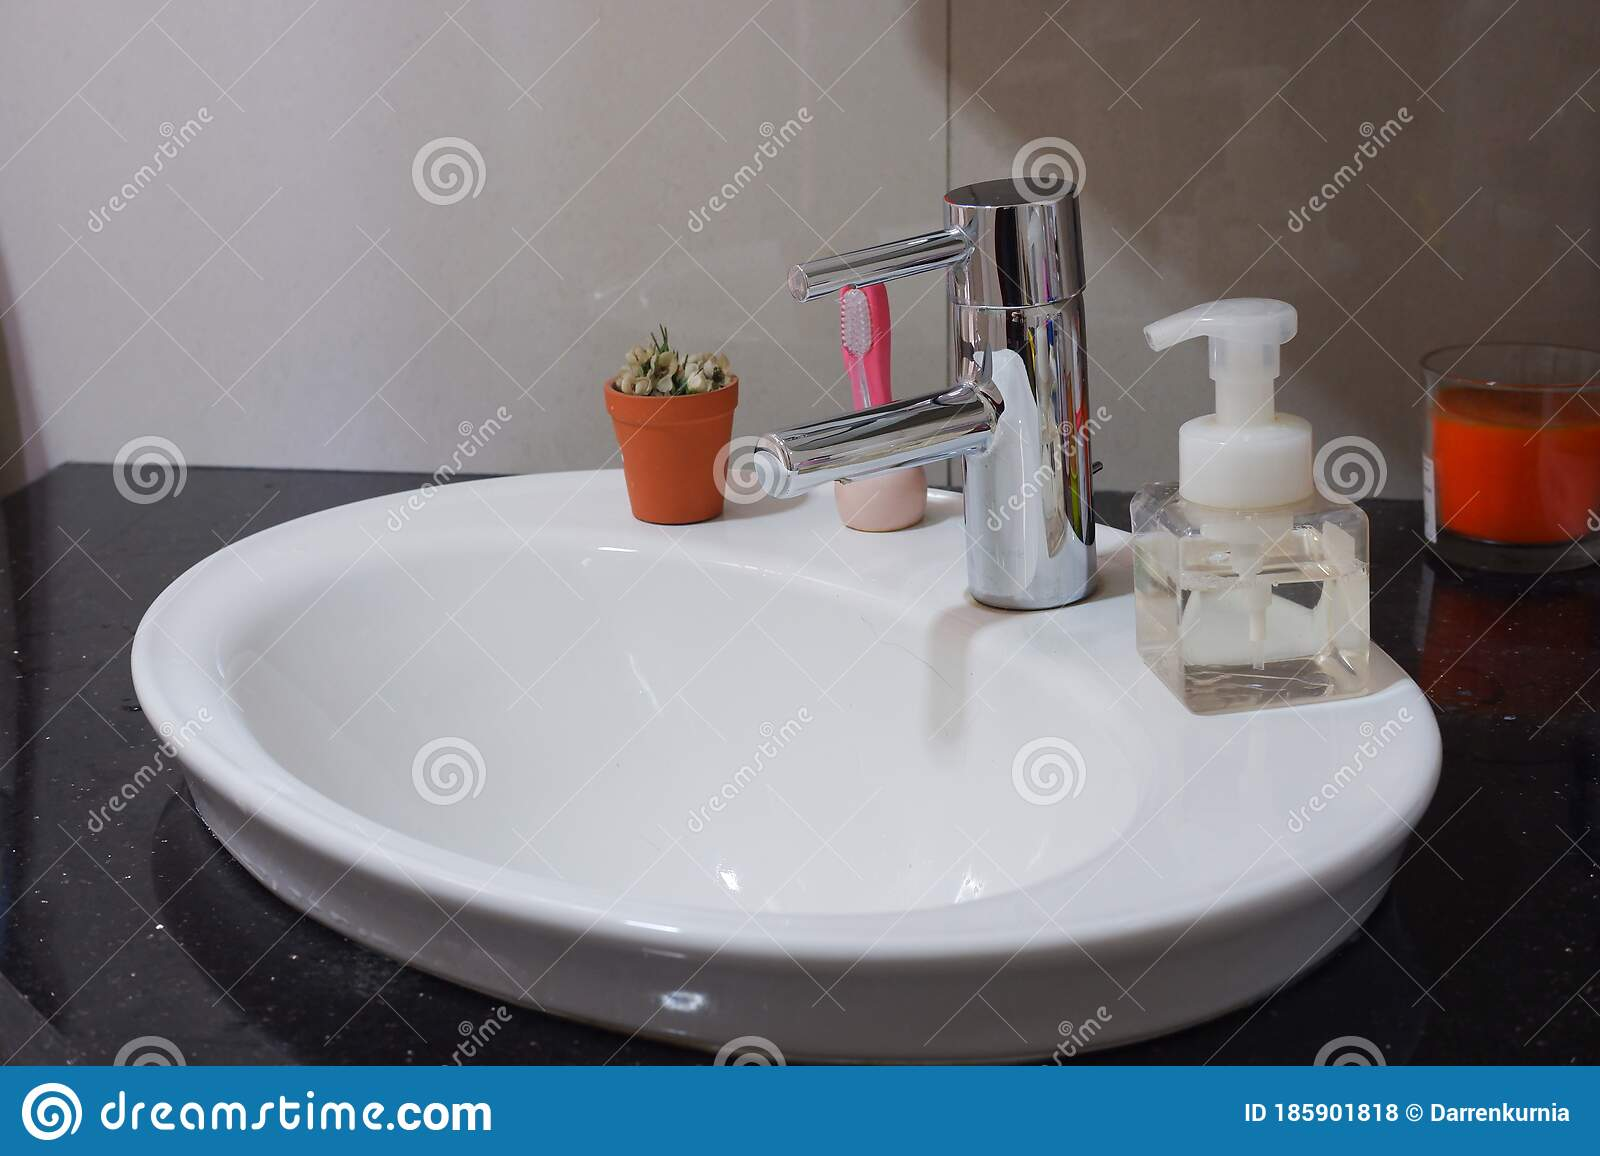 a ceramic sink with flowers toothbrush and a hand foam bottle beside it beautiful and minimalist bathroom stock photo image of kelapa famp 185901818